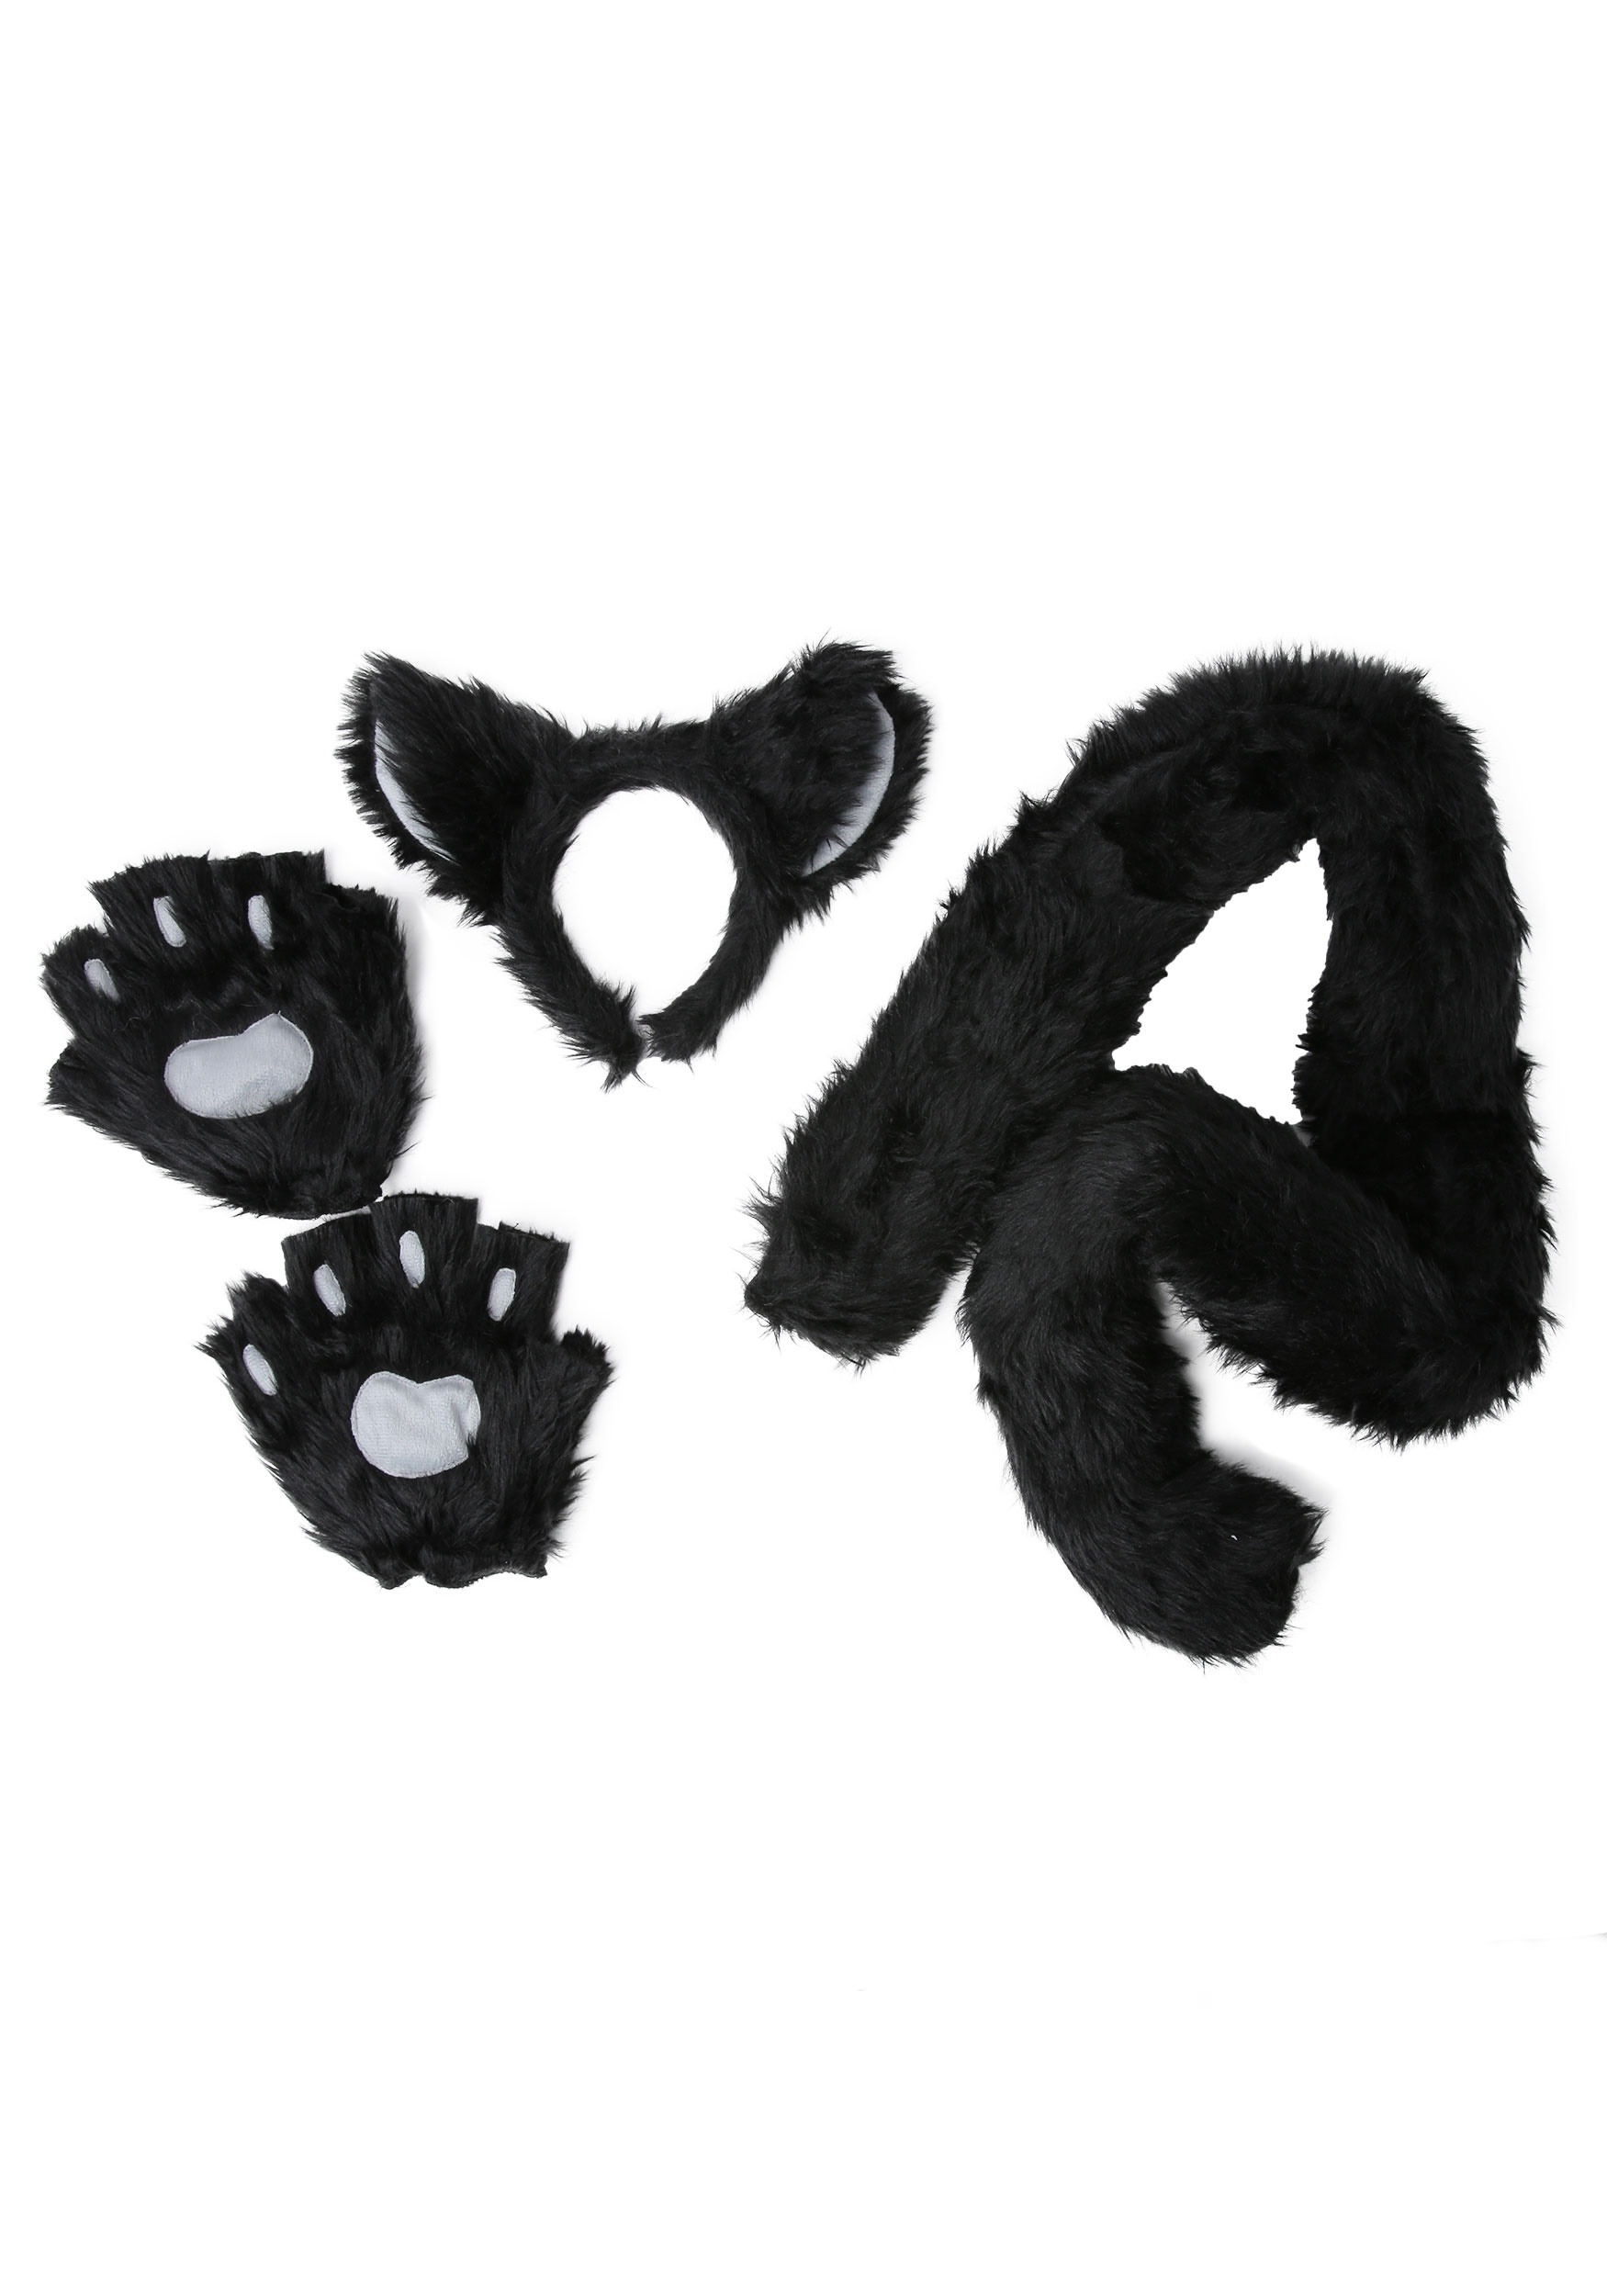 Deluxe Black Cat Kit